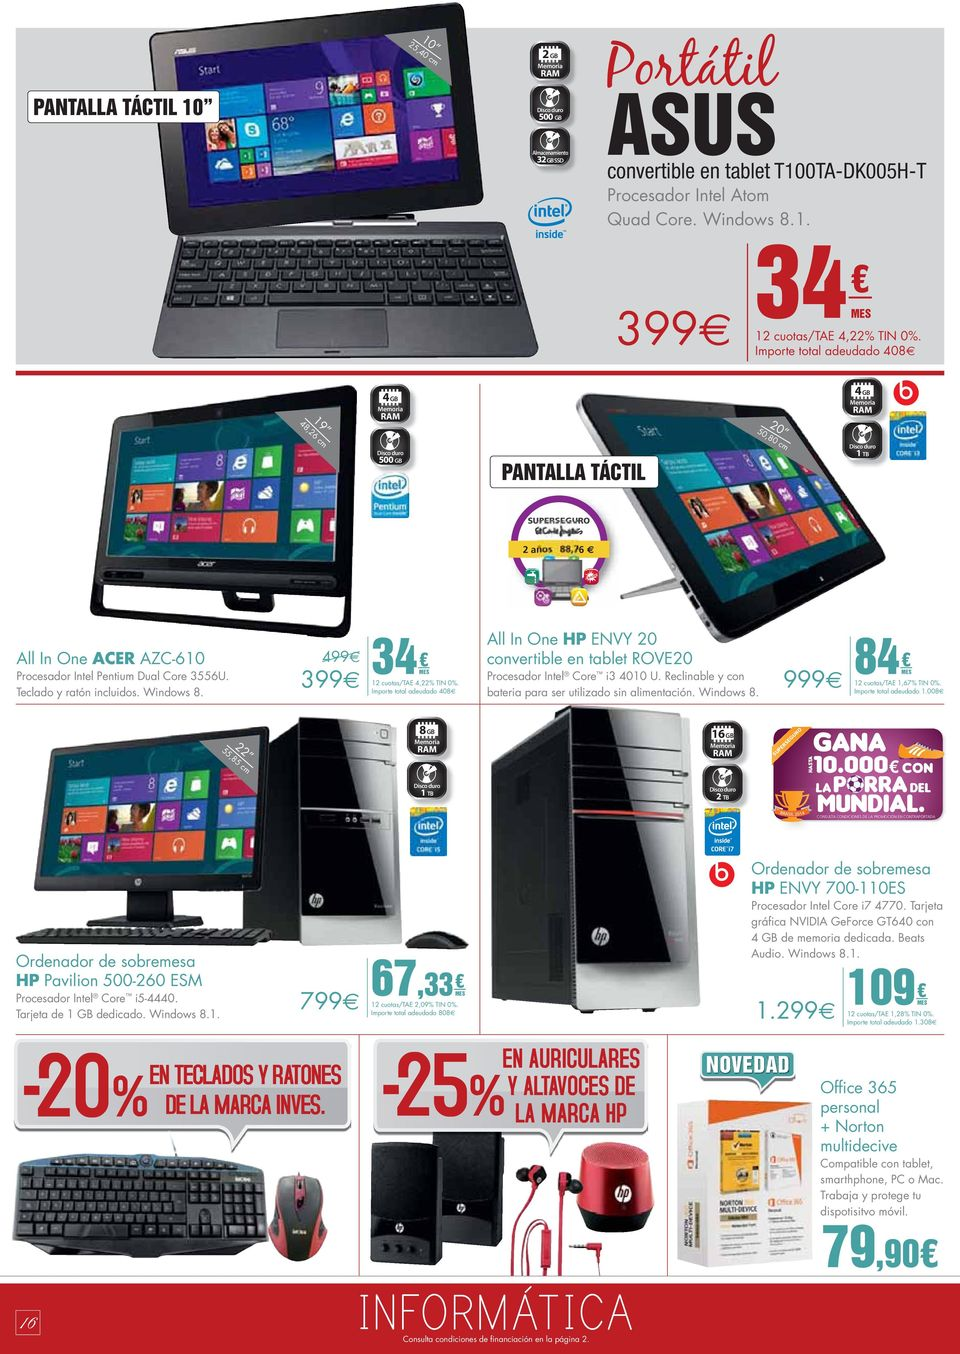 Teclado y ratón incluidos. Windows 8. 499 399 34 MES 12 cuotas/te 4,22% TIN 0%. Importe total audado 408 ll In One HP ENVY 20 convertible en tablet ROVE20 Procesador Intel Core i3 4010 U.